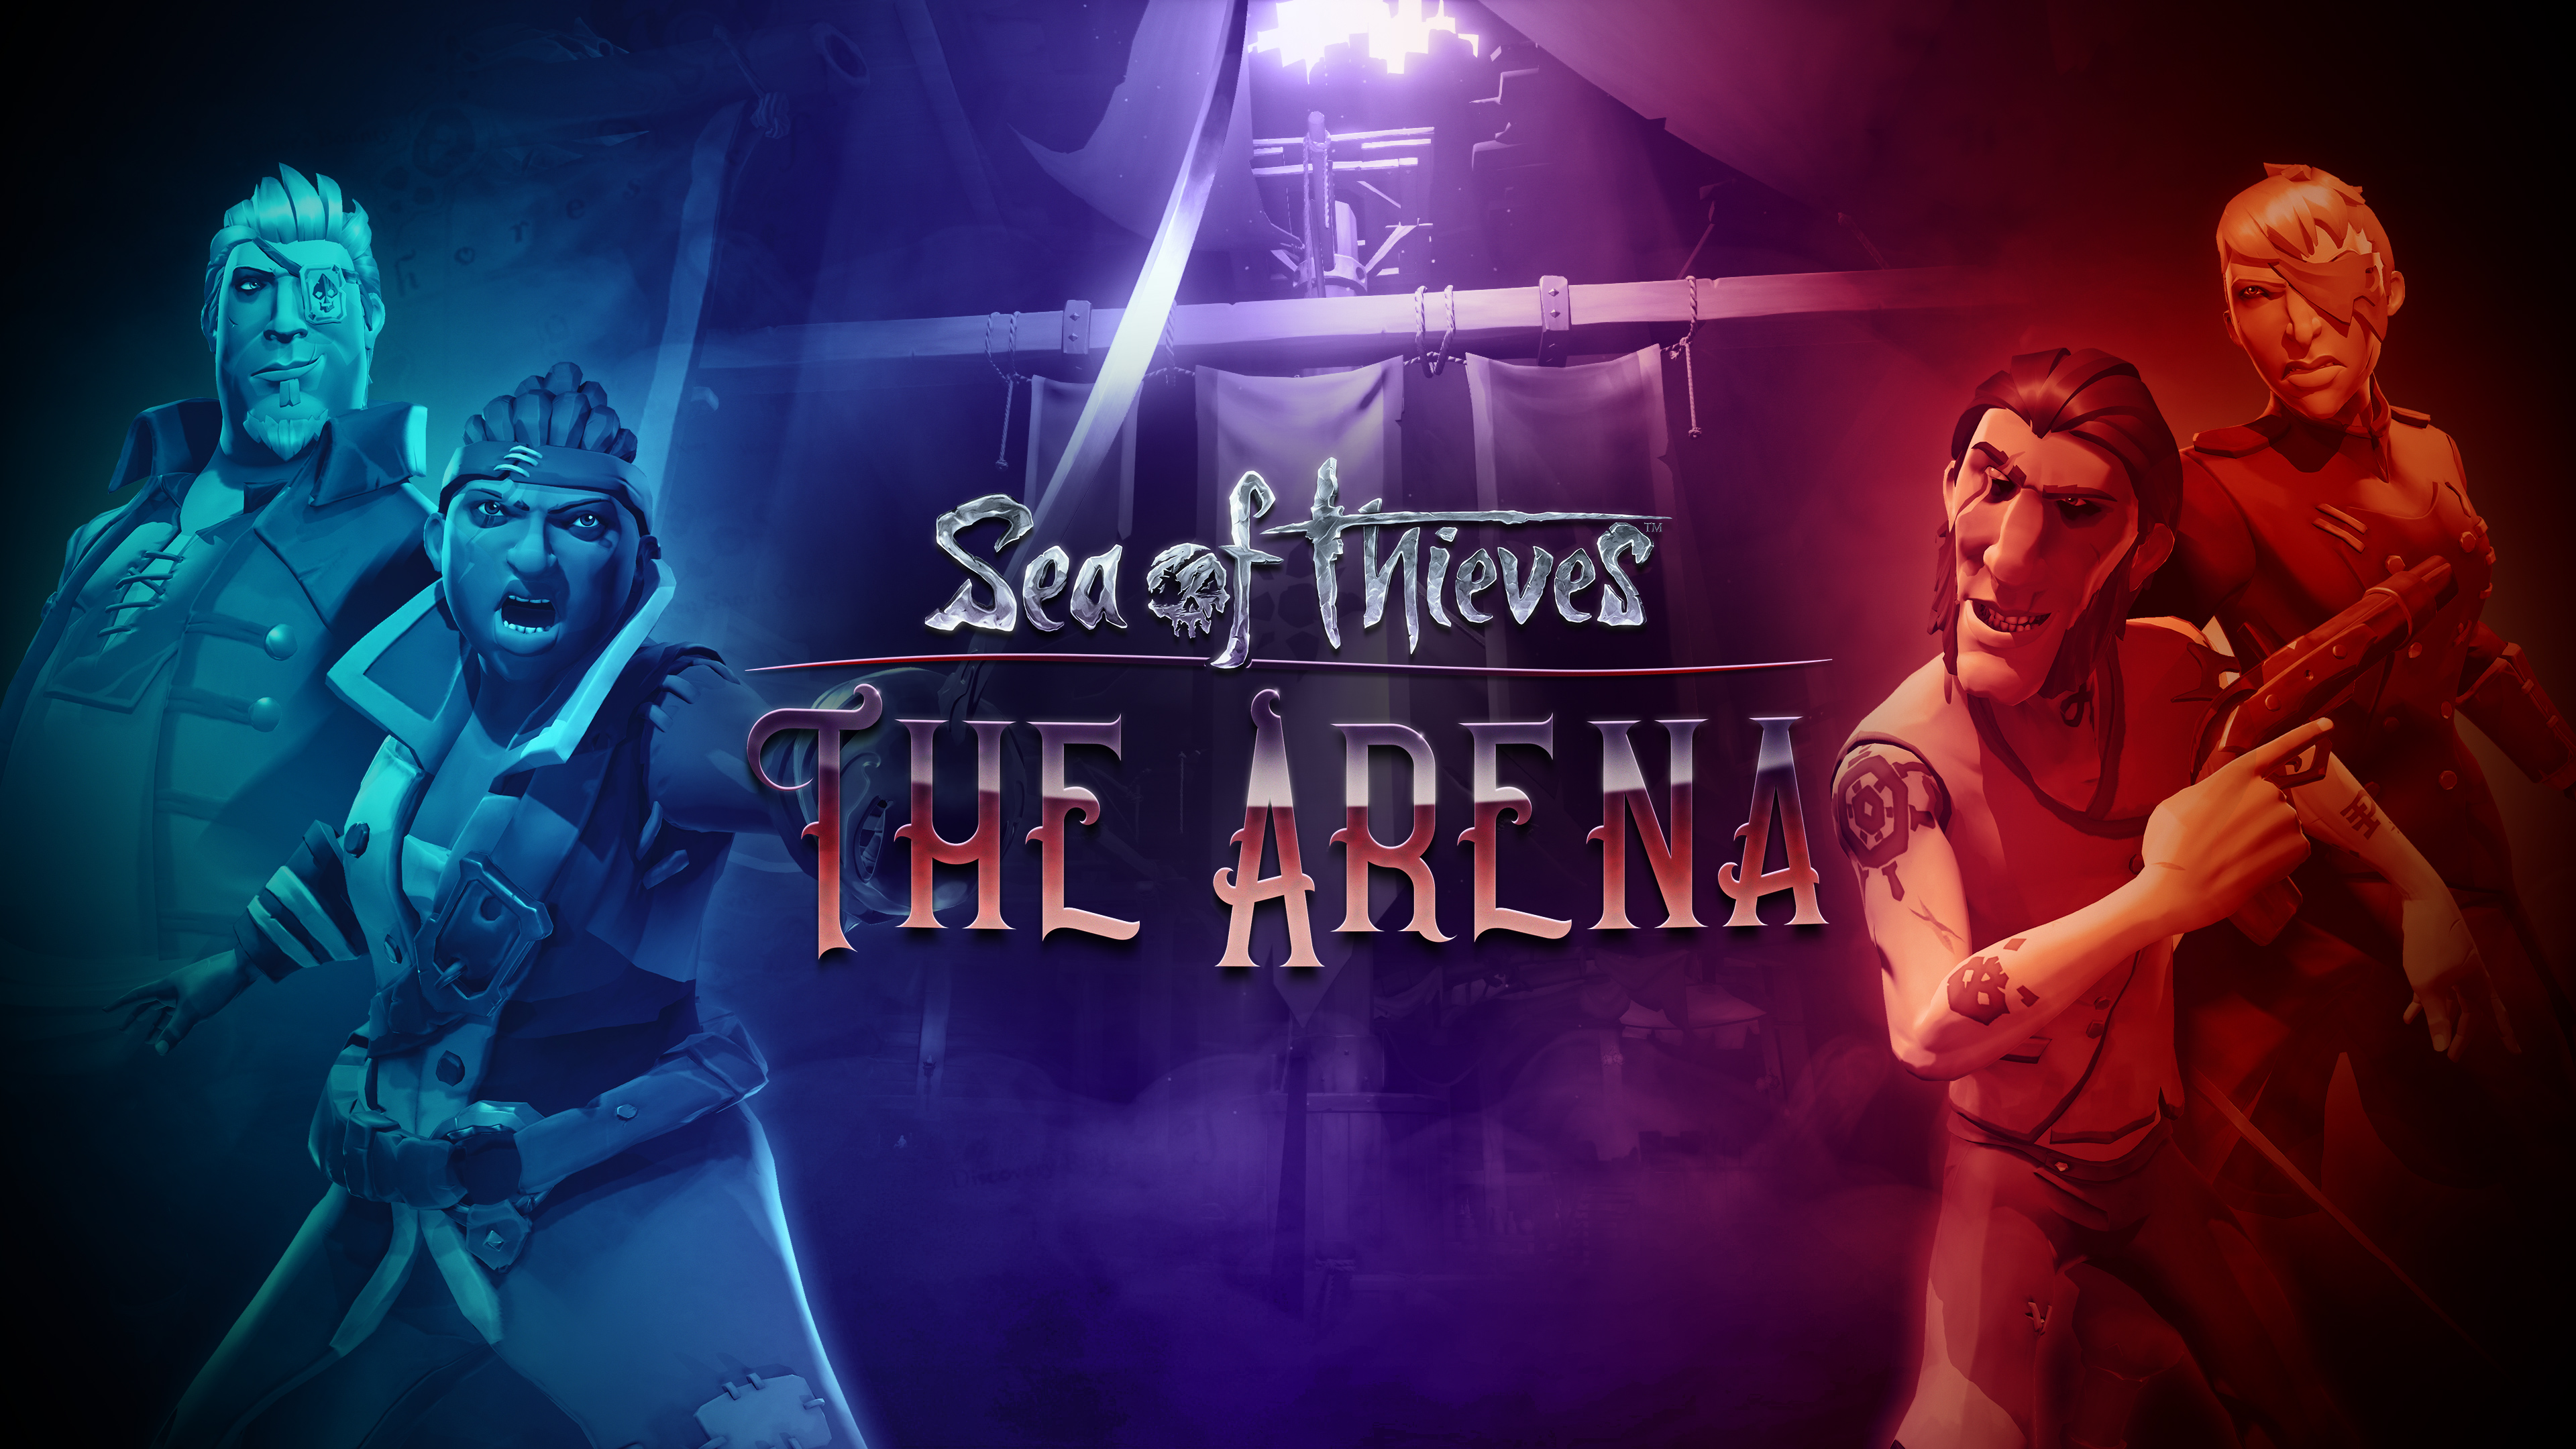 sea of thieves first arena 4k 1555207698 - Sea Of Thieves First Arena 4k - xbox games wallpapers, sea of thieves wallpapers, pc games wallpapers, hd-wallpapers, games wallpapers, 4k-wallpapers, 2019 games wallpapers